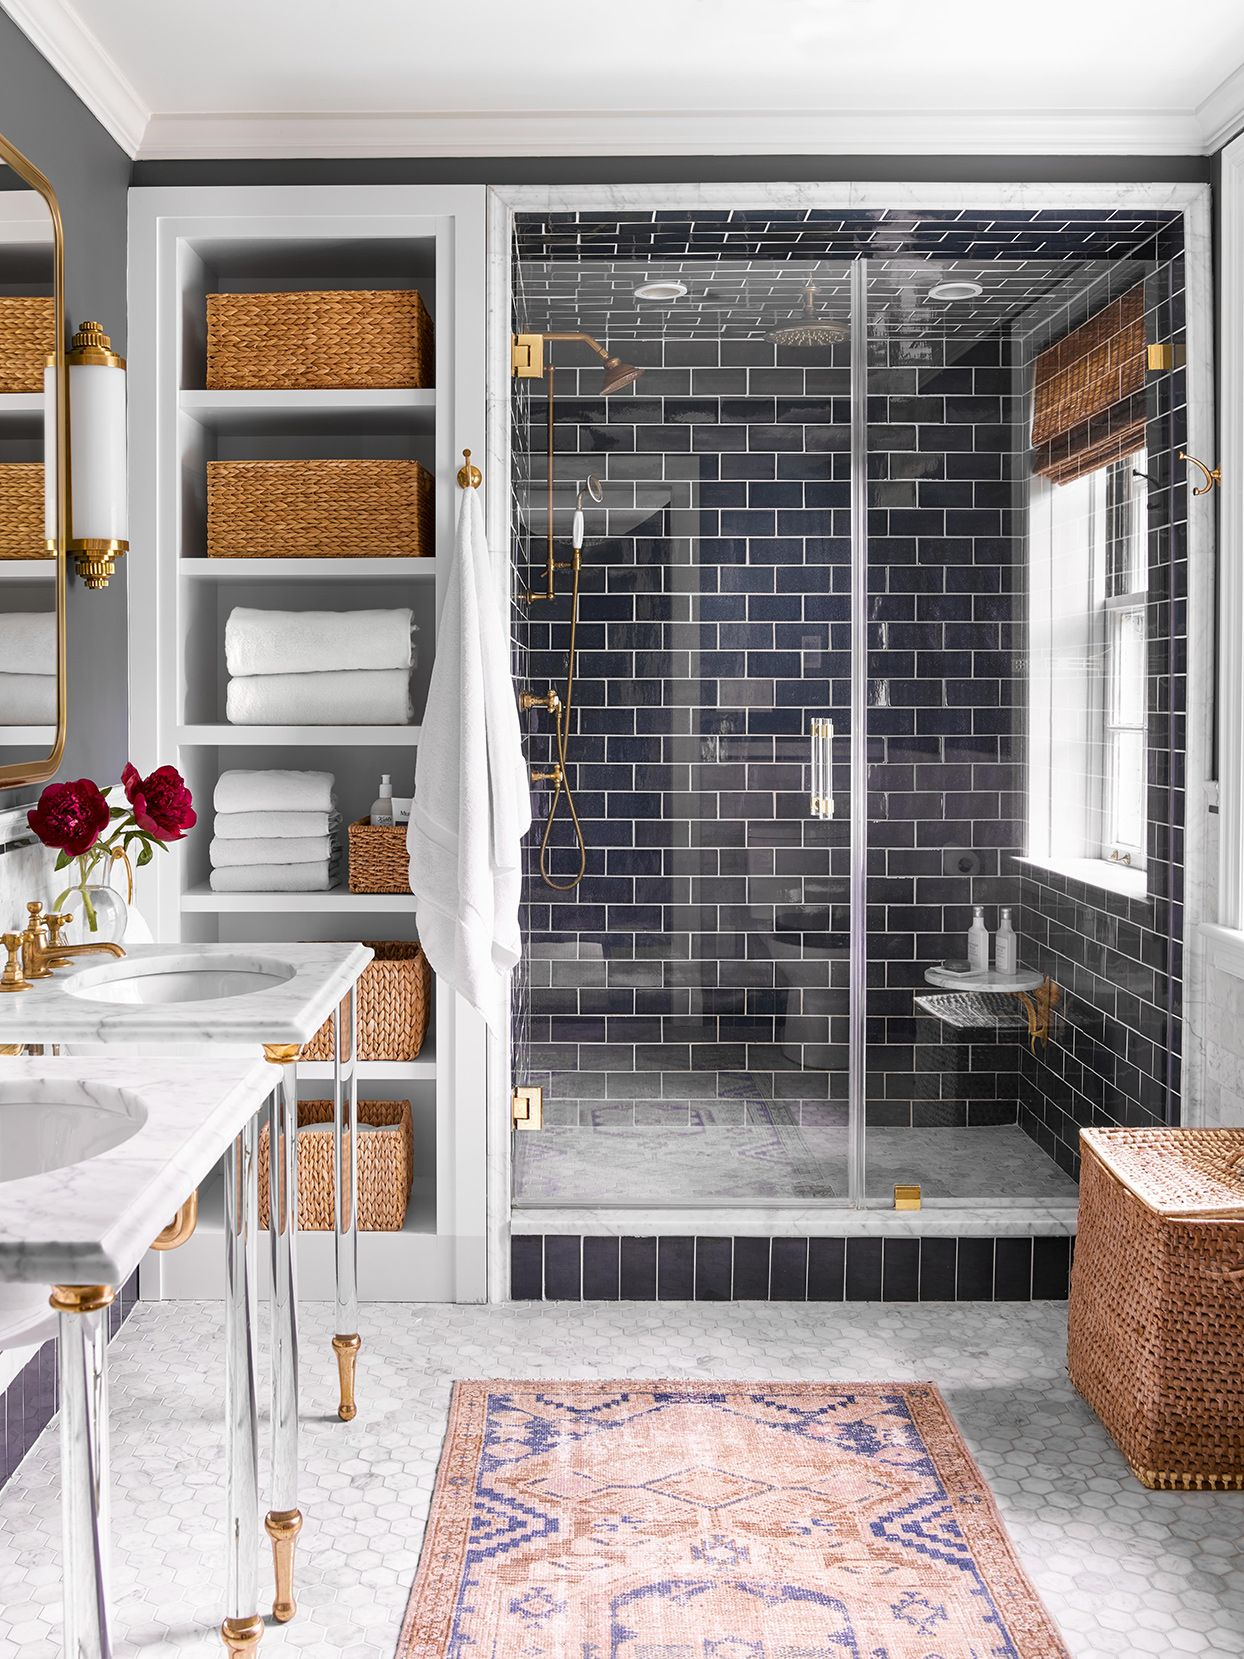 17 Money Saving Tips To Stretch Your Small Bathroom Budget In 2020 Color Bathroom Design Small Bathroom Home